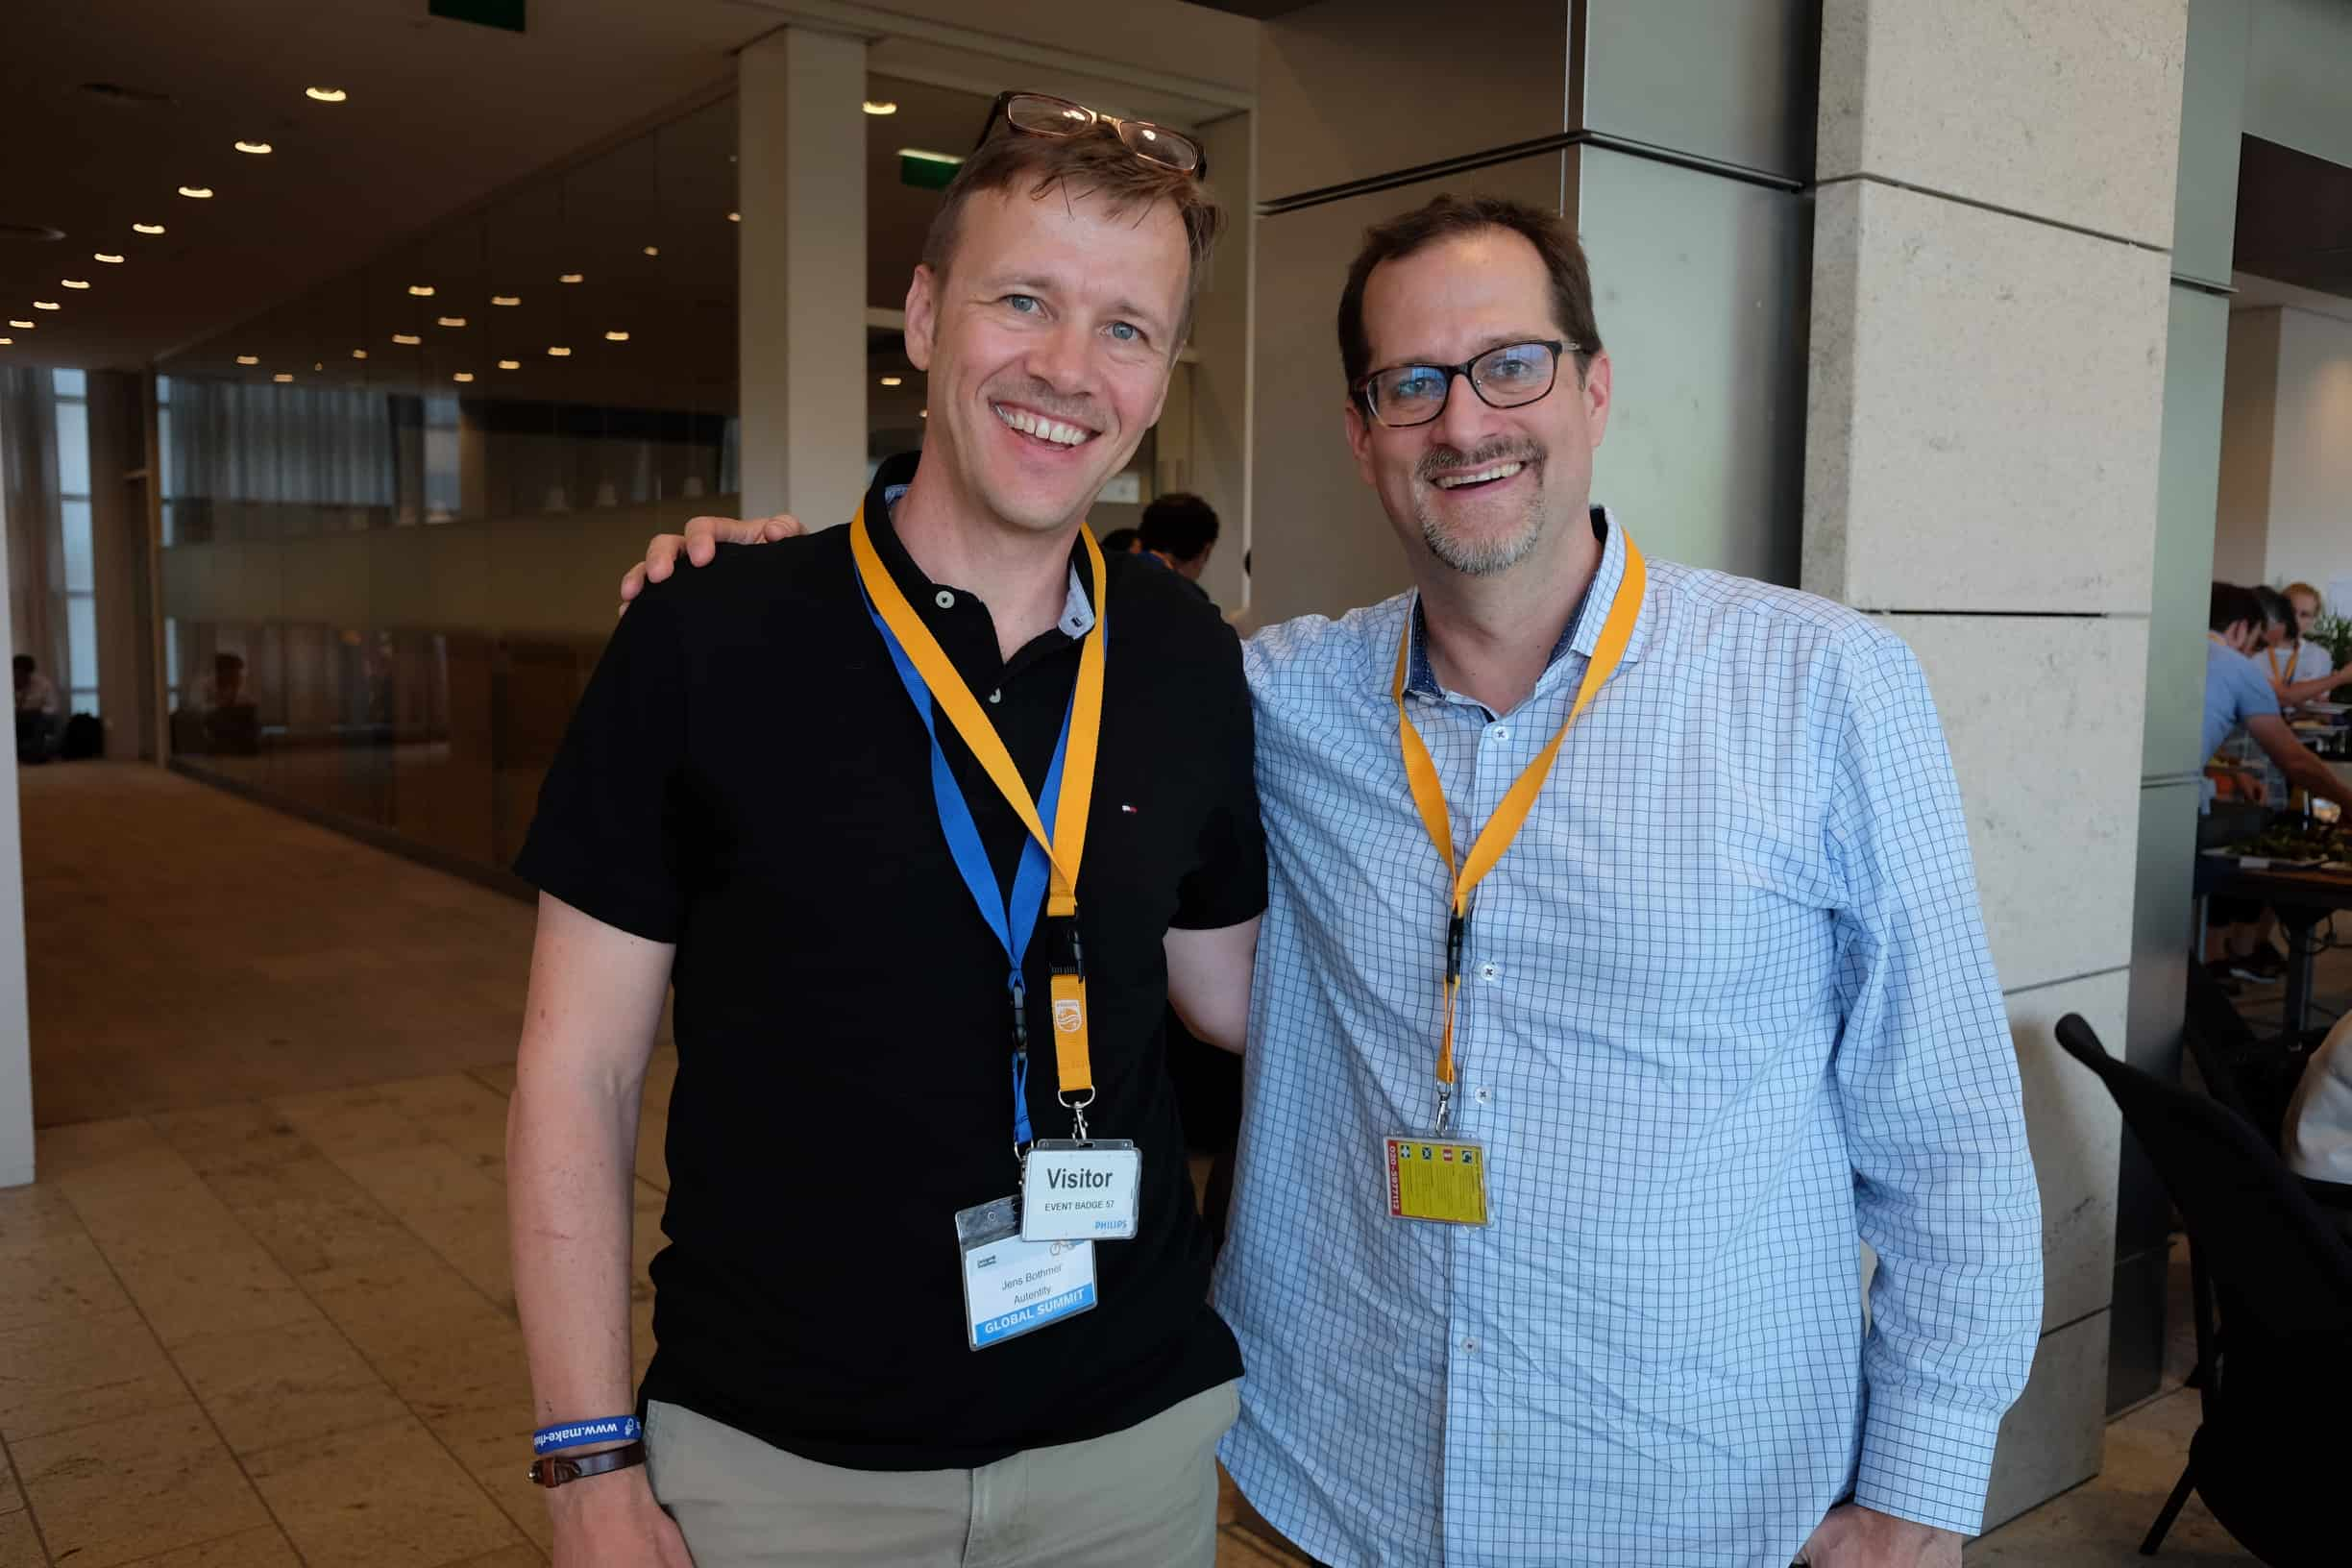 Jens Bothmer and Jim Kalbach from famous book Mapping Experiences